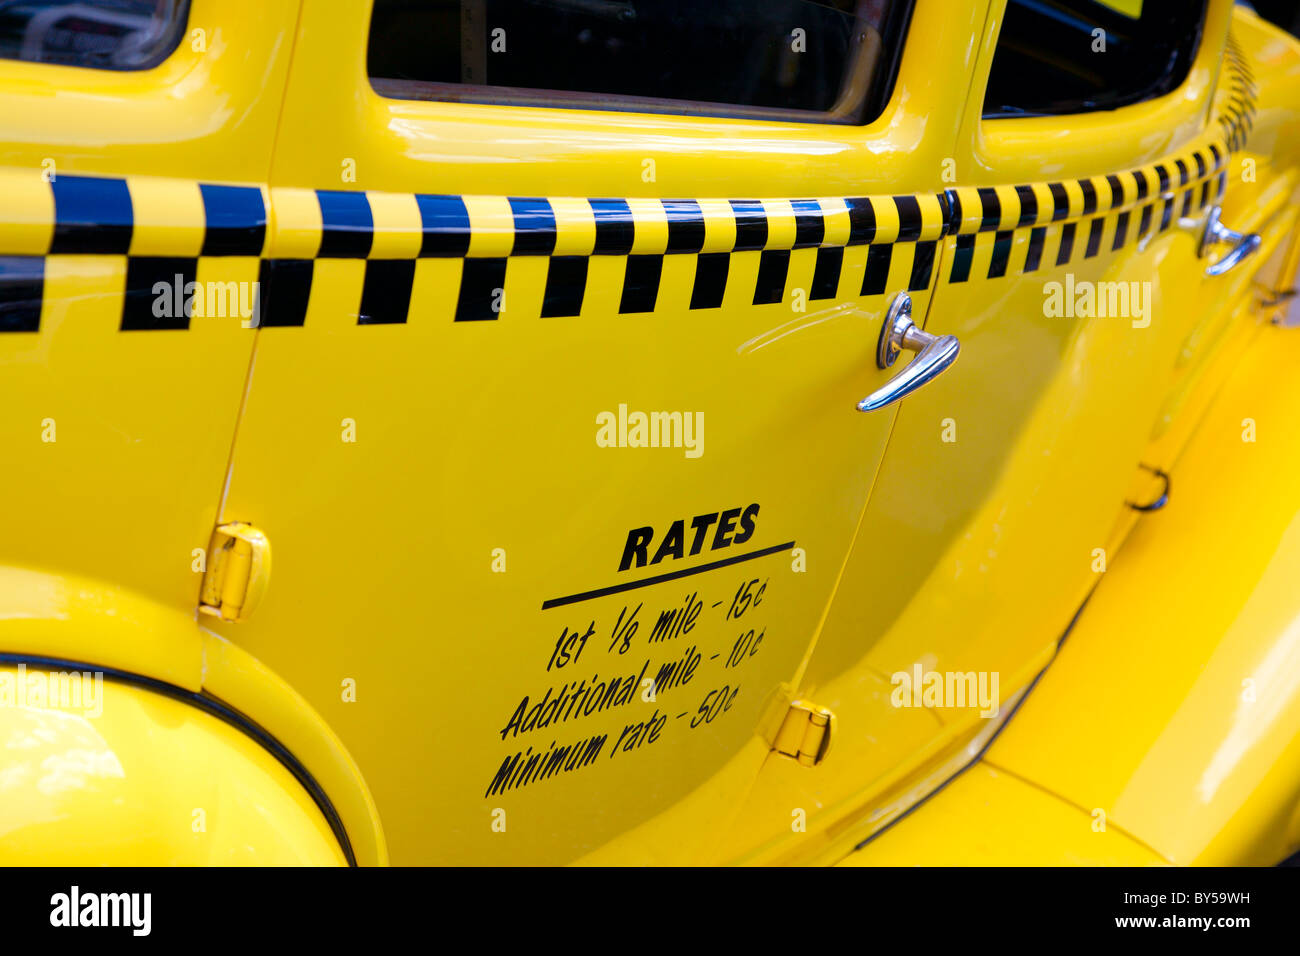 Old yellow taxi Stock Photo: 33923613 - Alamy